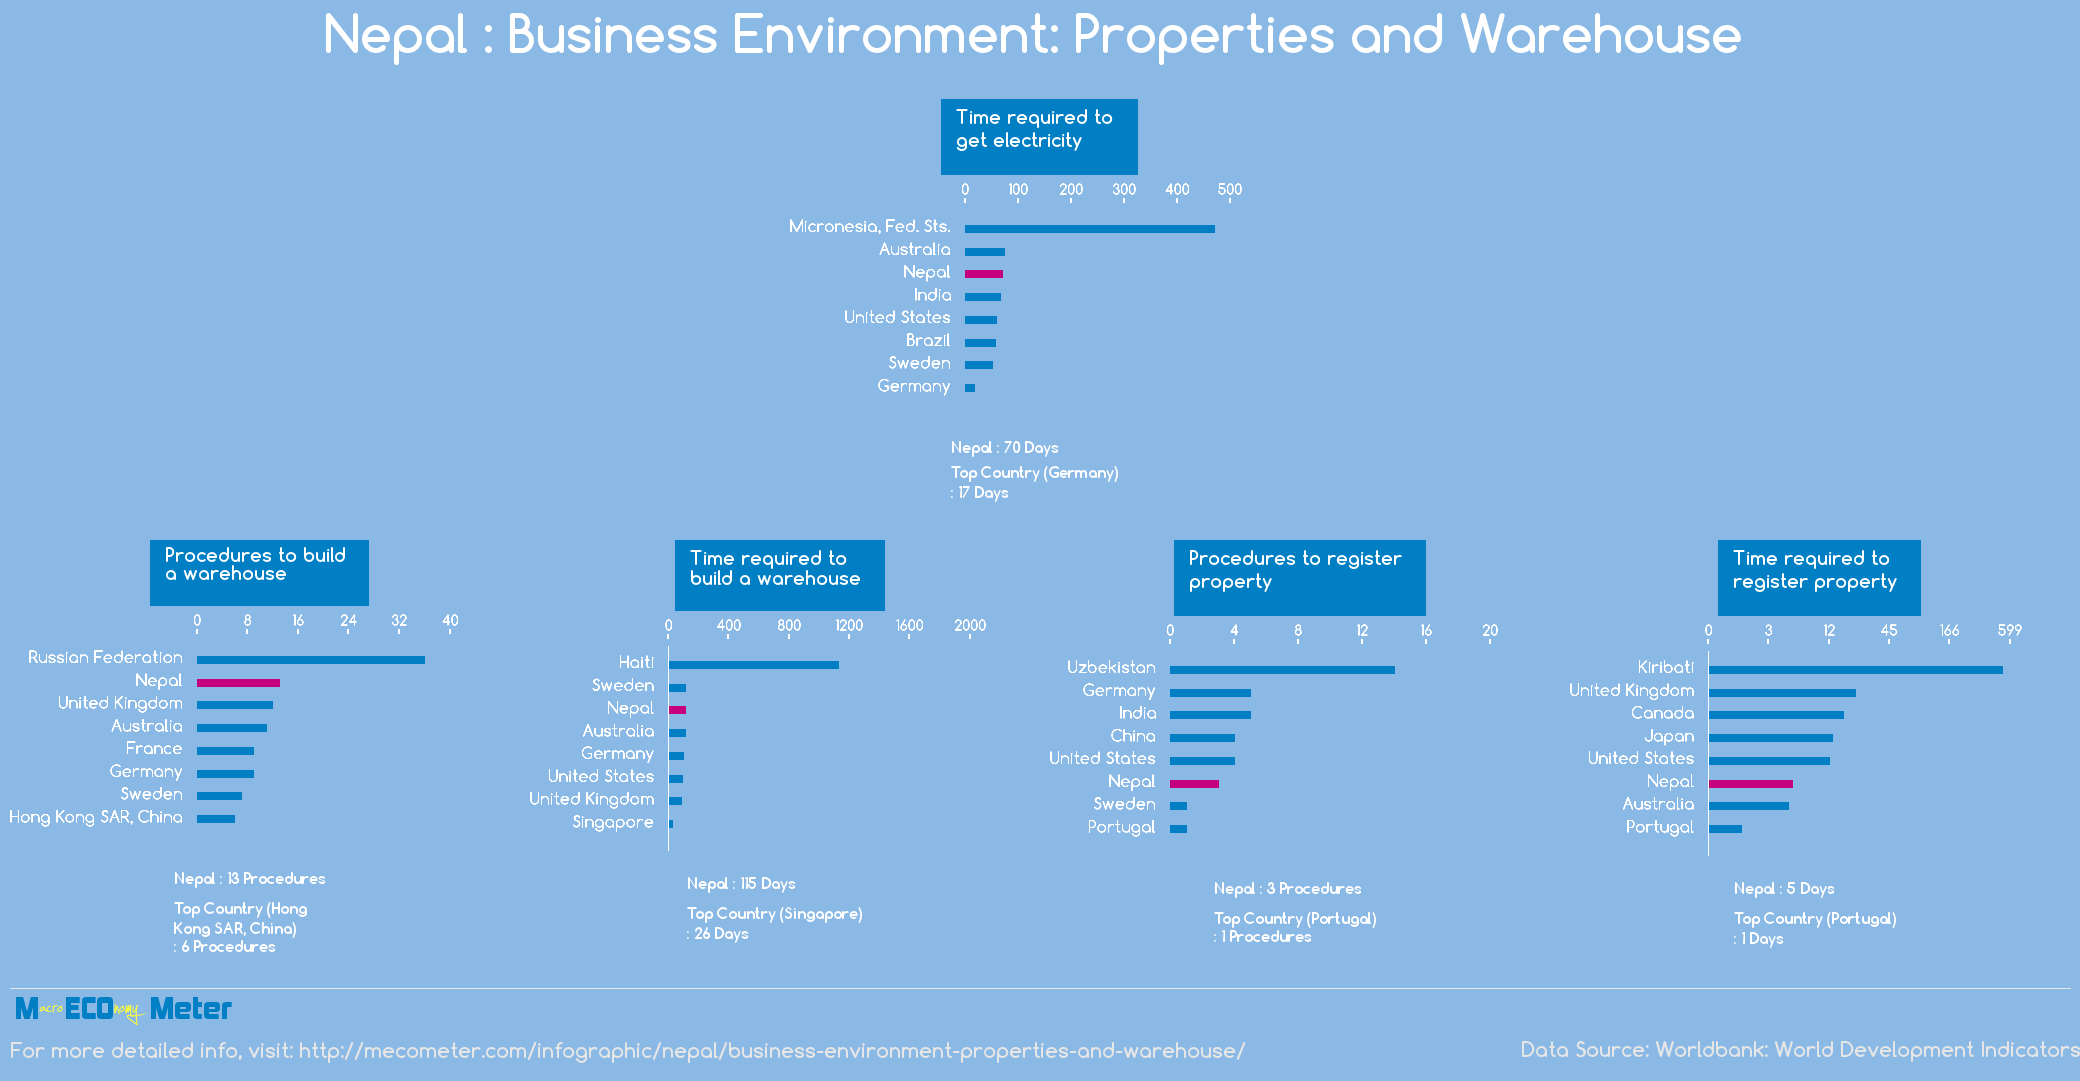 Nepal : Business Environment: Properties and Warehouse